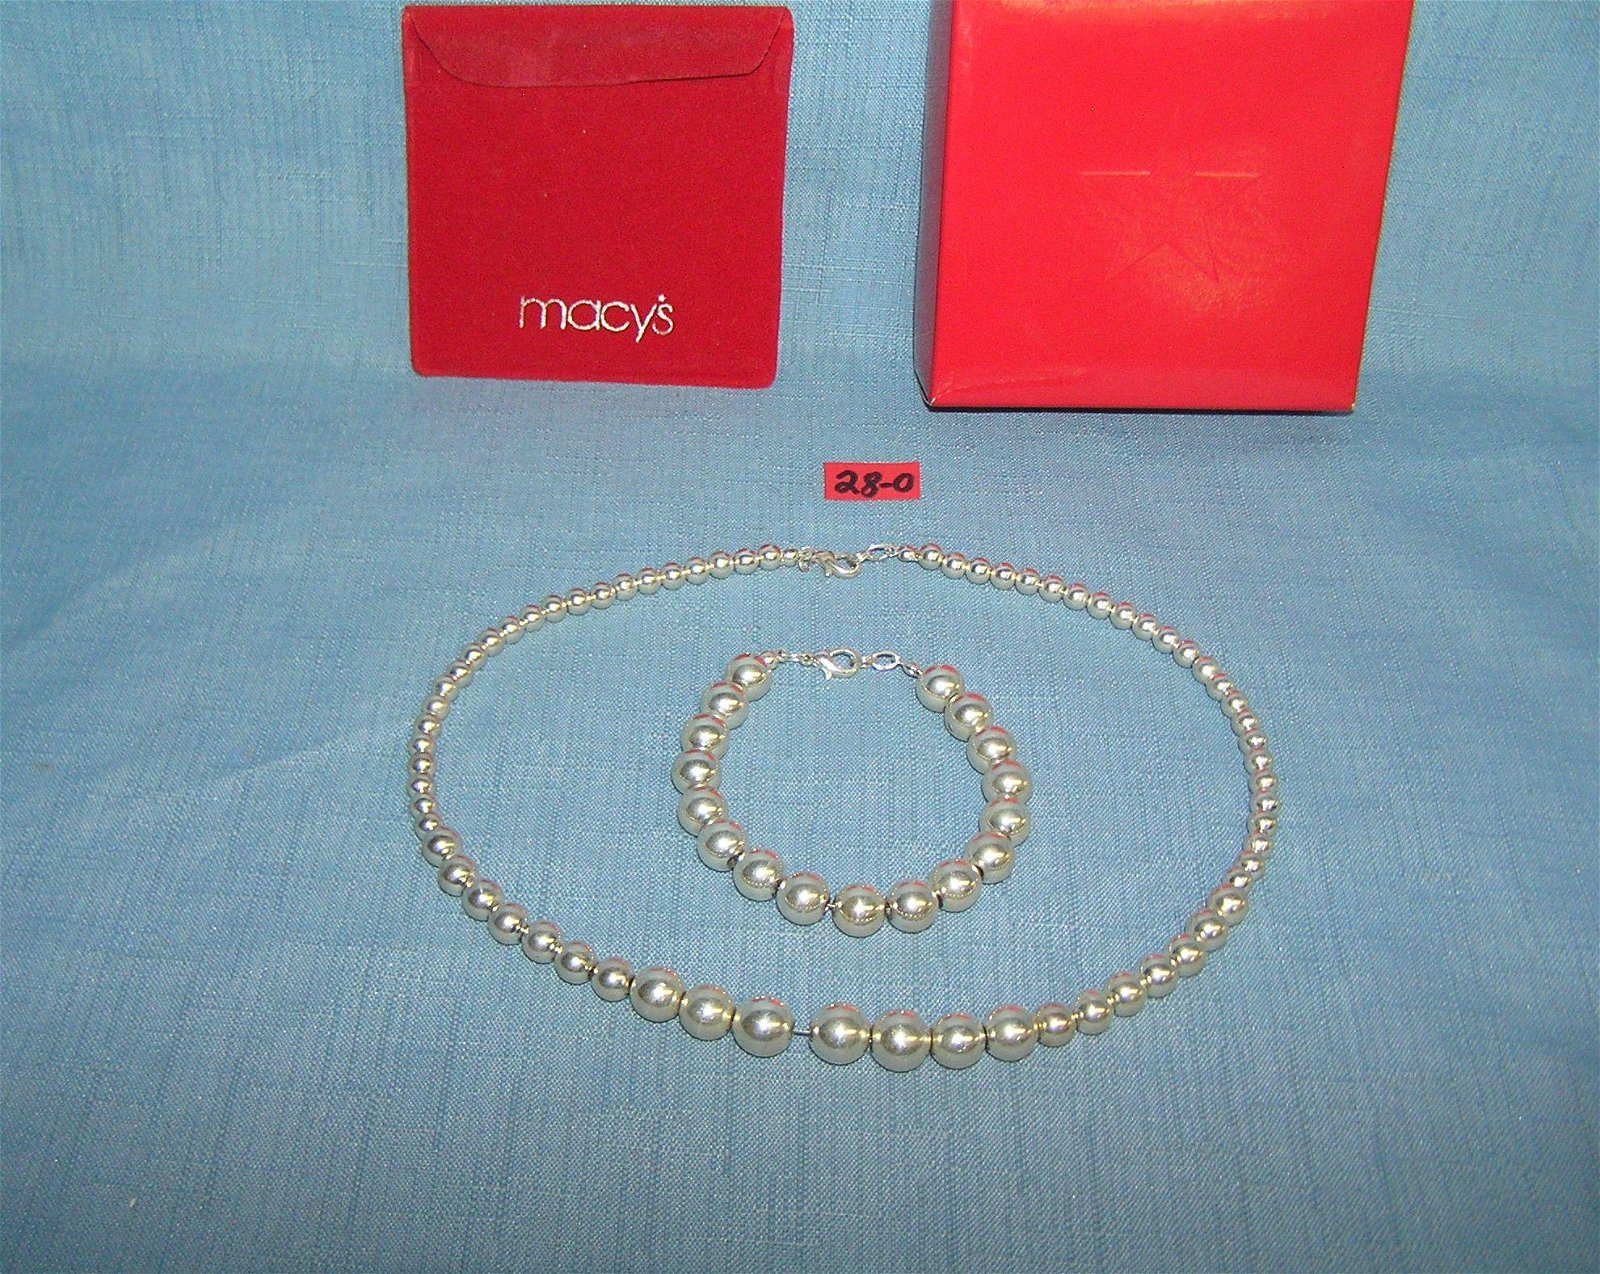 High quality silver tone necklace and bracelet set